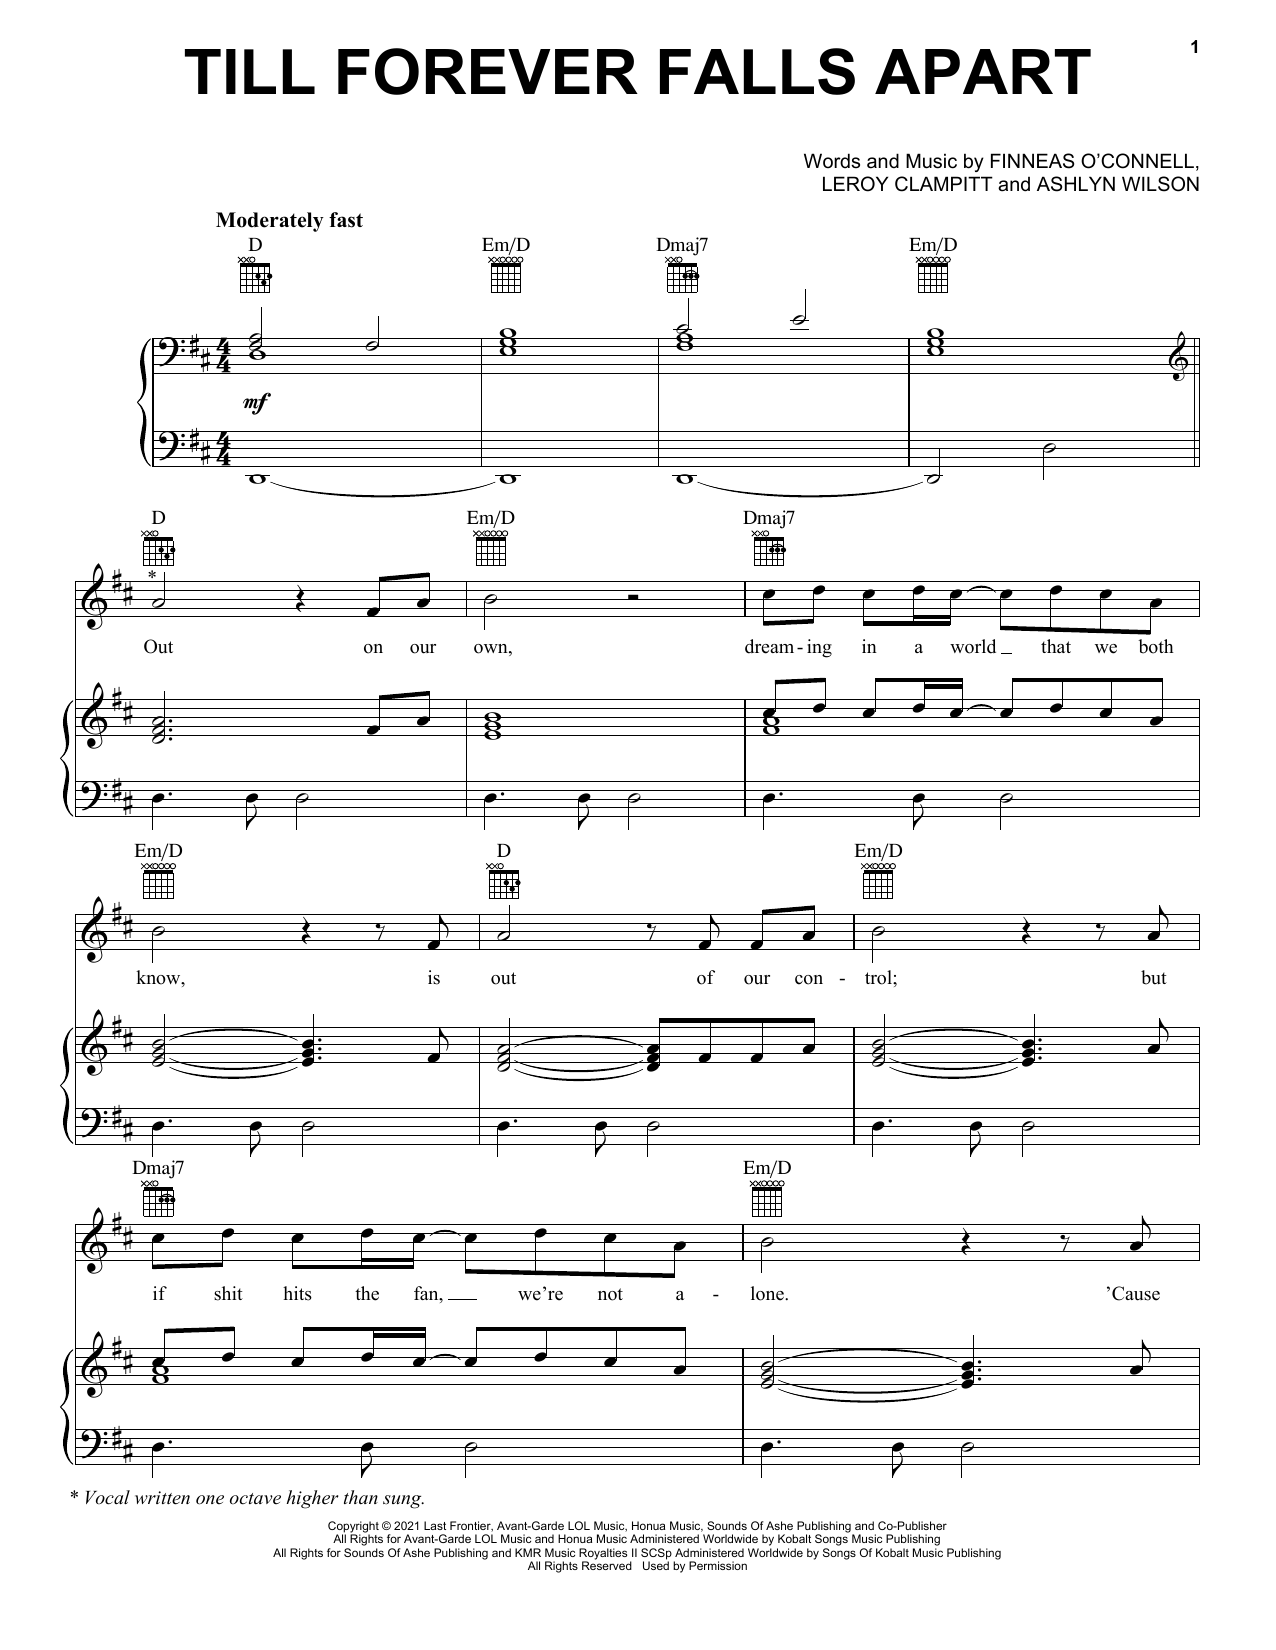 Ashe & FINNEAS Till Forever Falls Apart sheet music preview music notes and score for Piano, Vocal & Guitar (Right-Hand Melody) including 6 page(s)